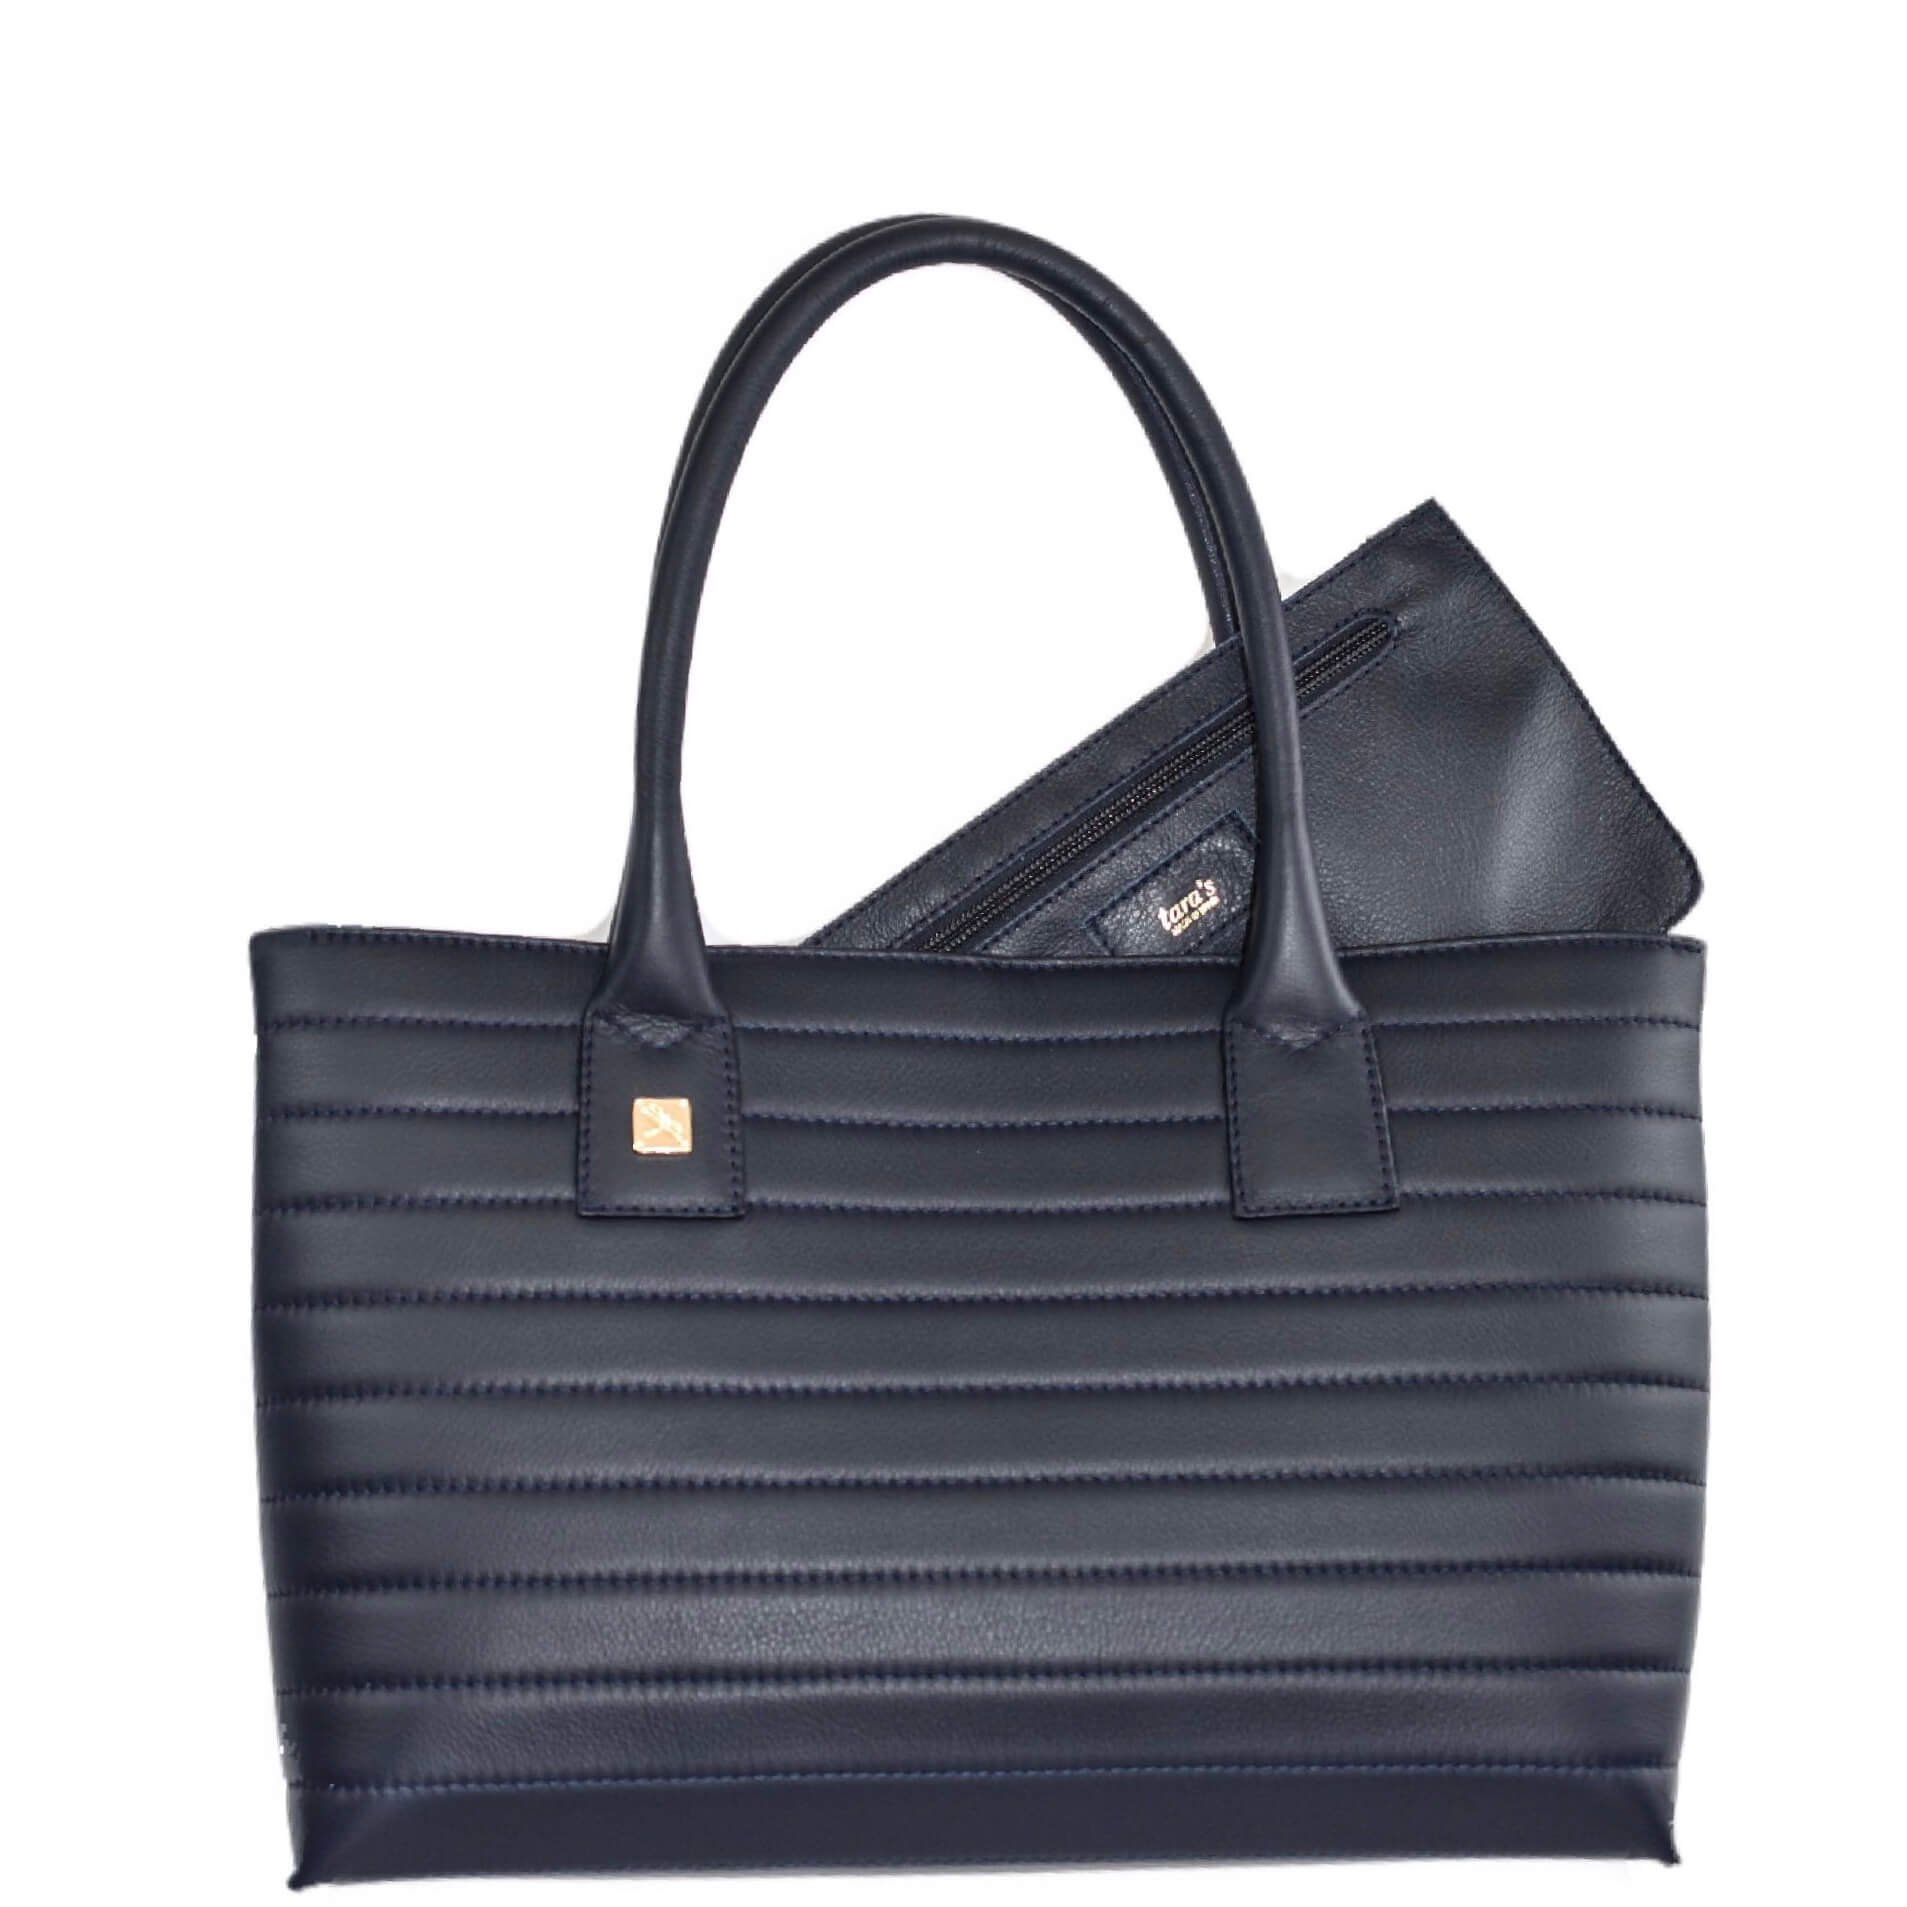 Navy Tote Leather Handbag. Natalia S